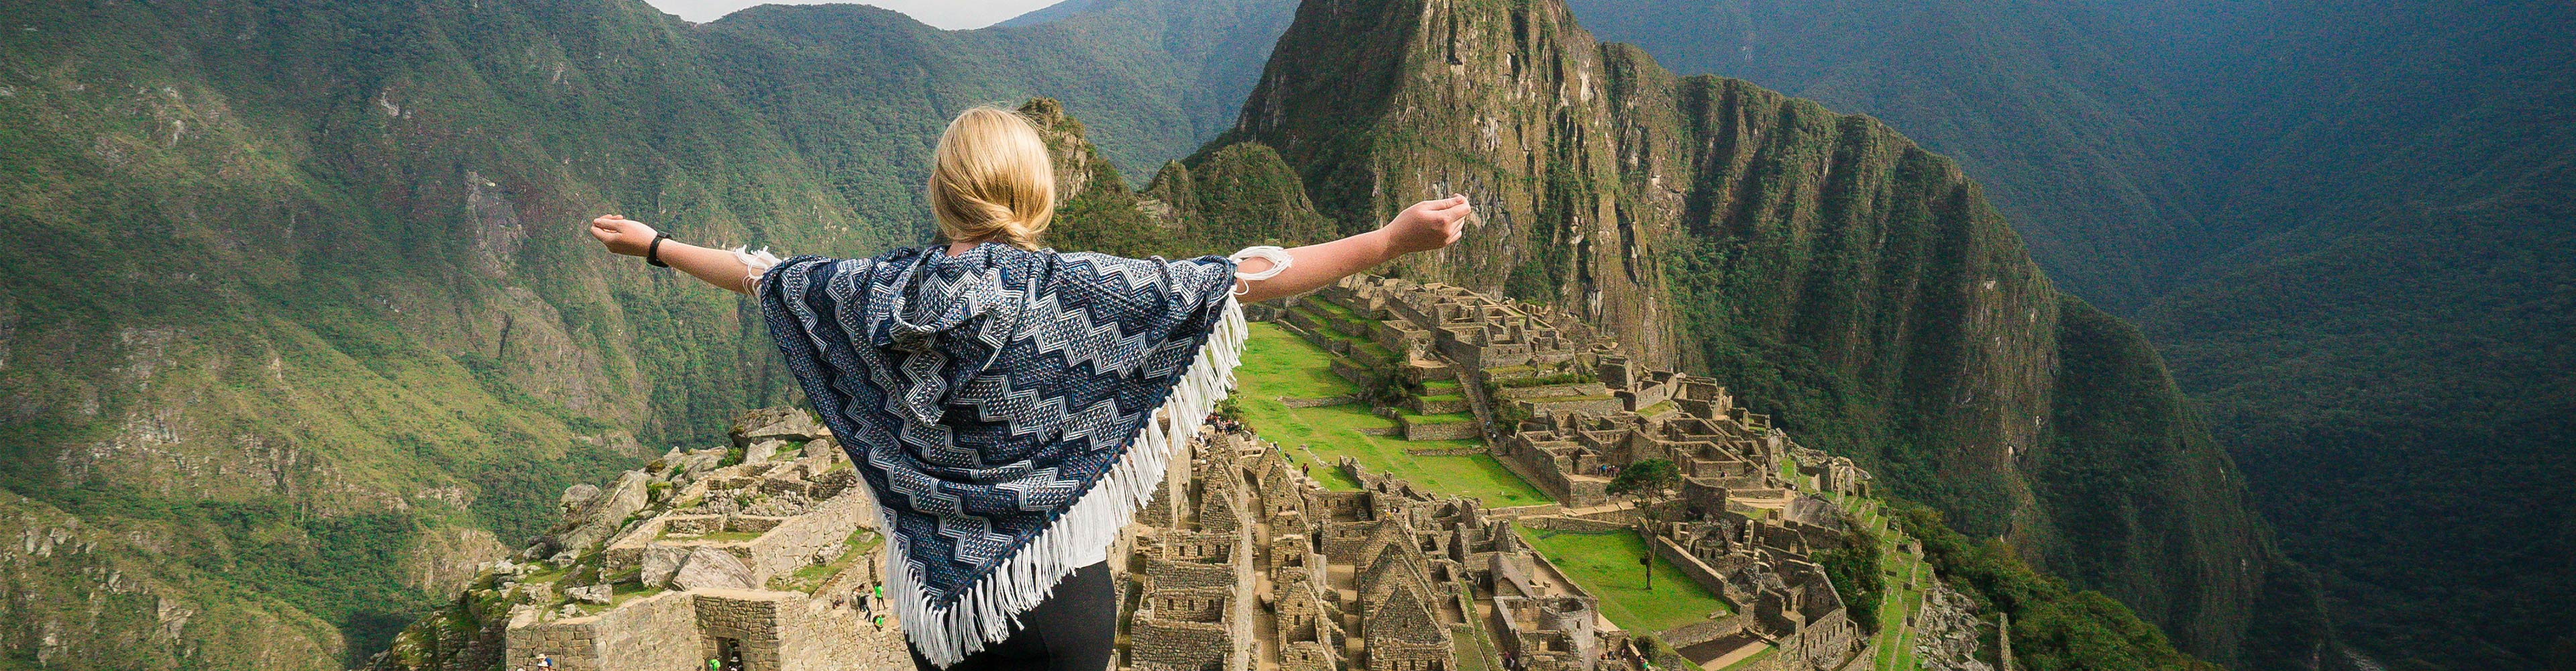 Six Days on the Inca Trail